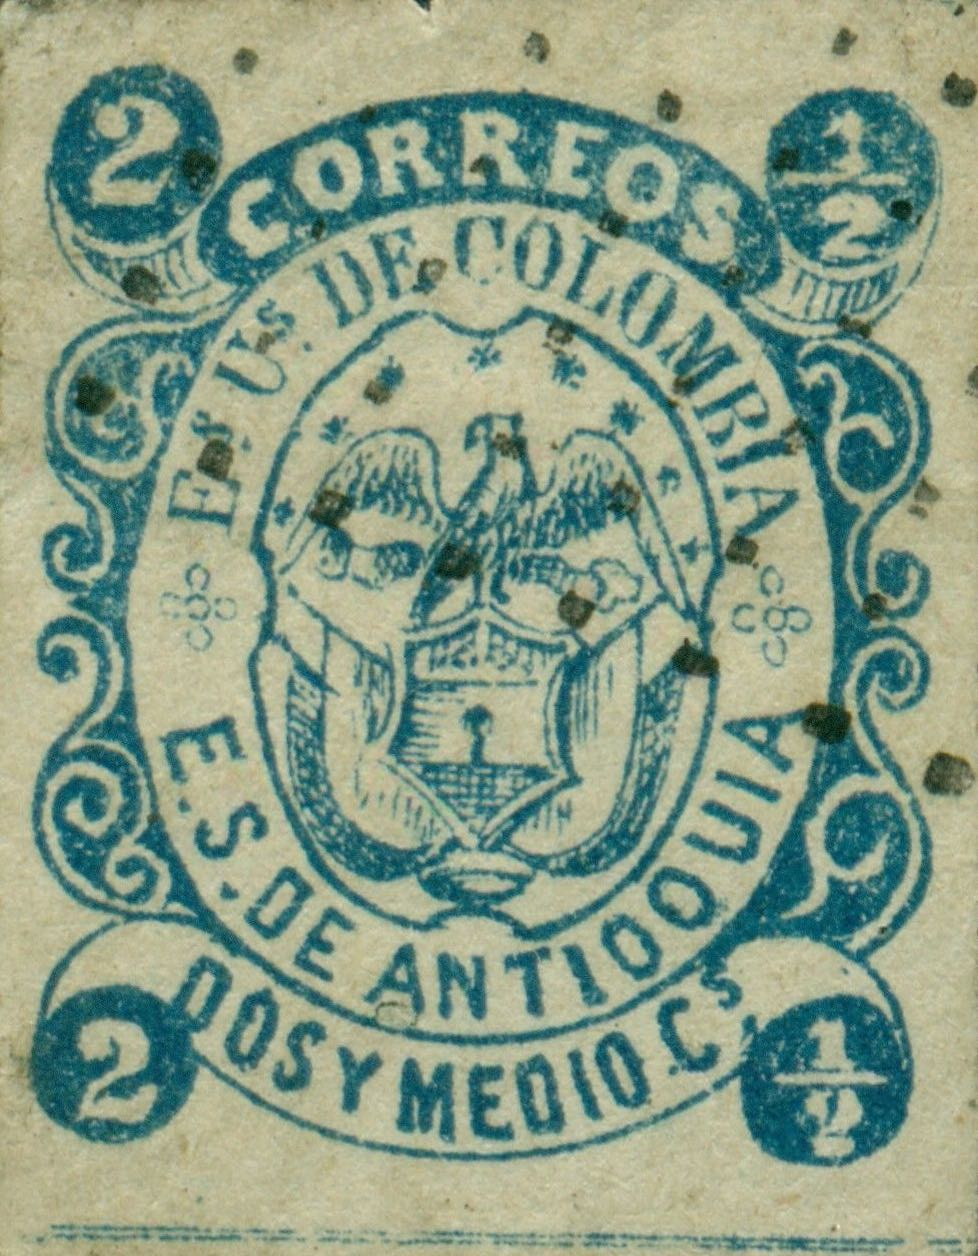 Antioquia_1869_Coat-of-Arms_2-5c_Forgery